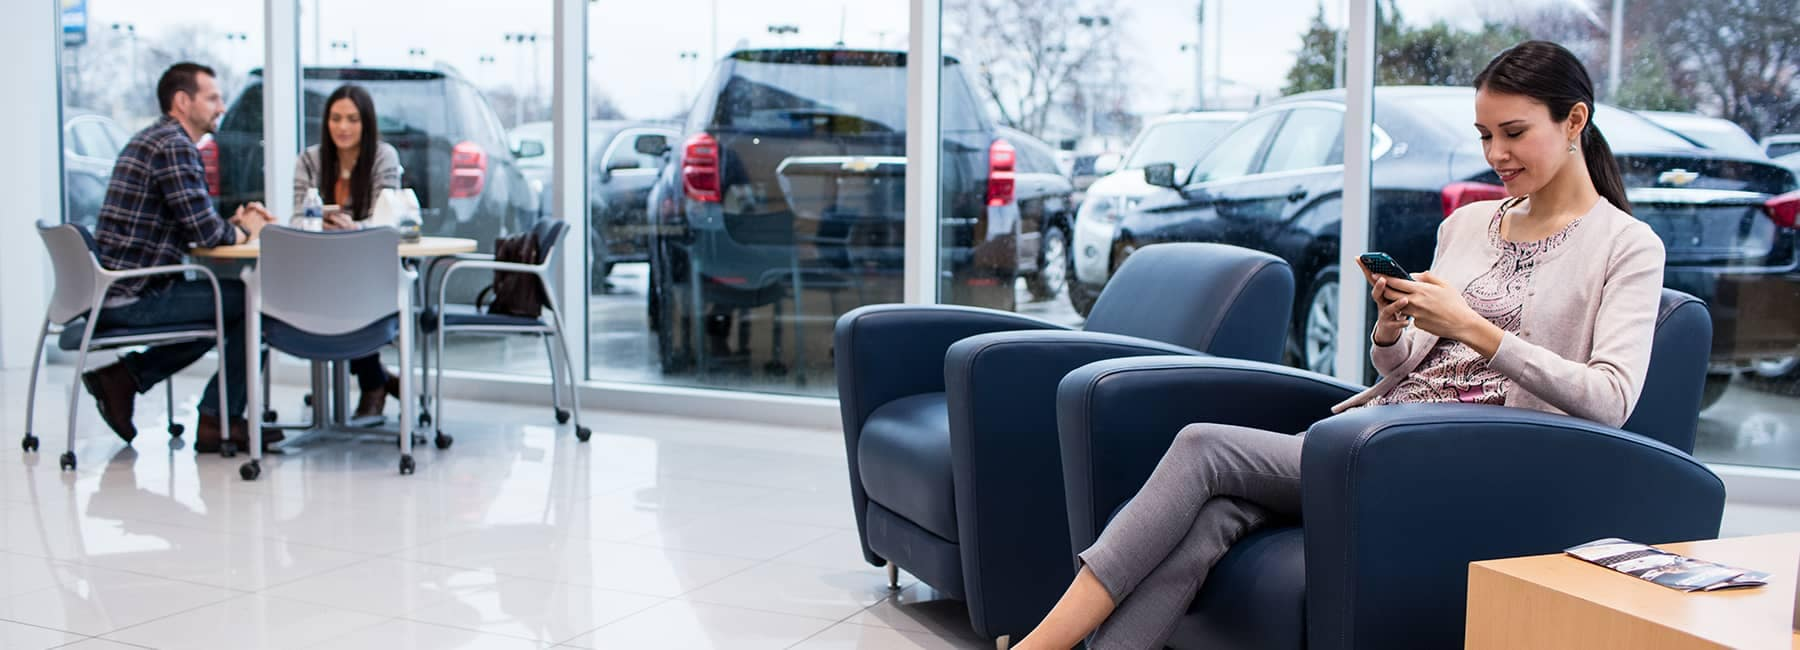 Chevrolet customers sitting in a showroom